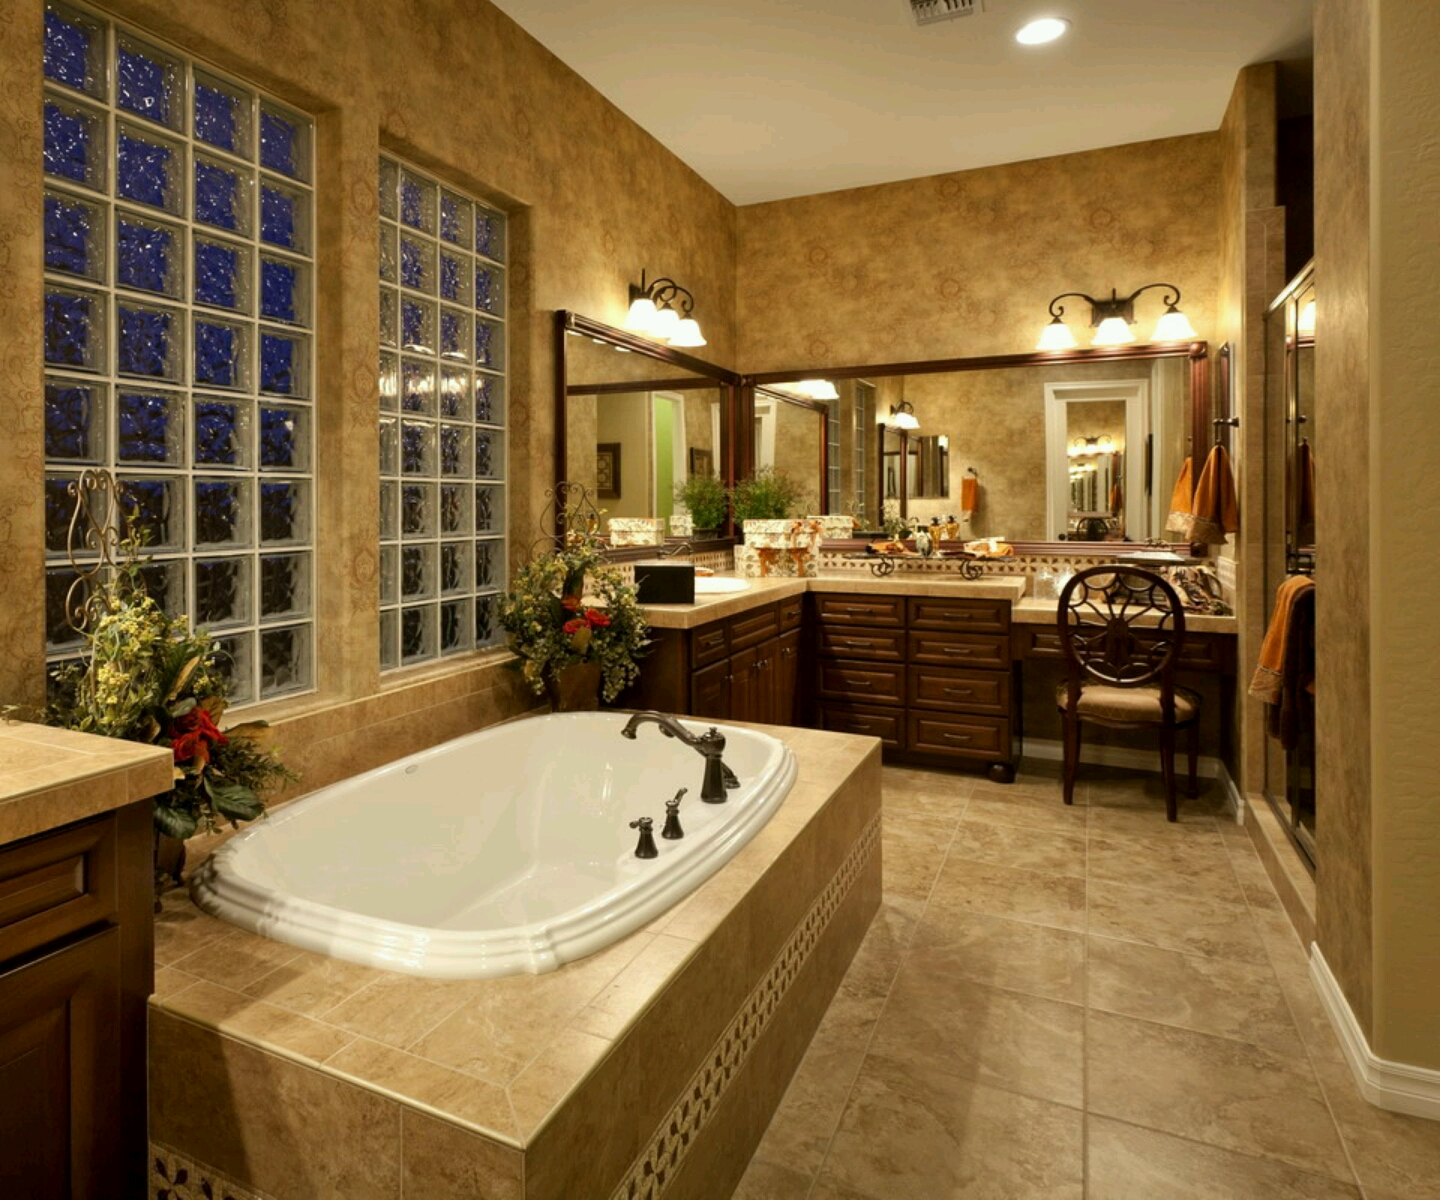 St. Louis Kitchen & Bathroom Remodeling